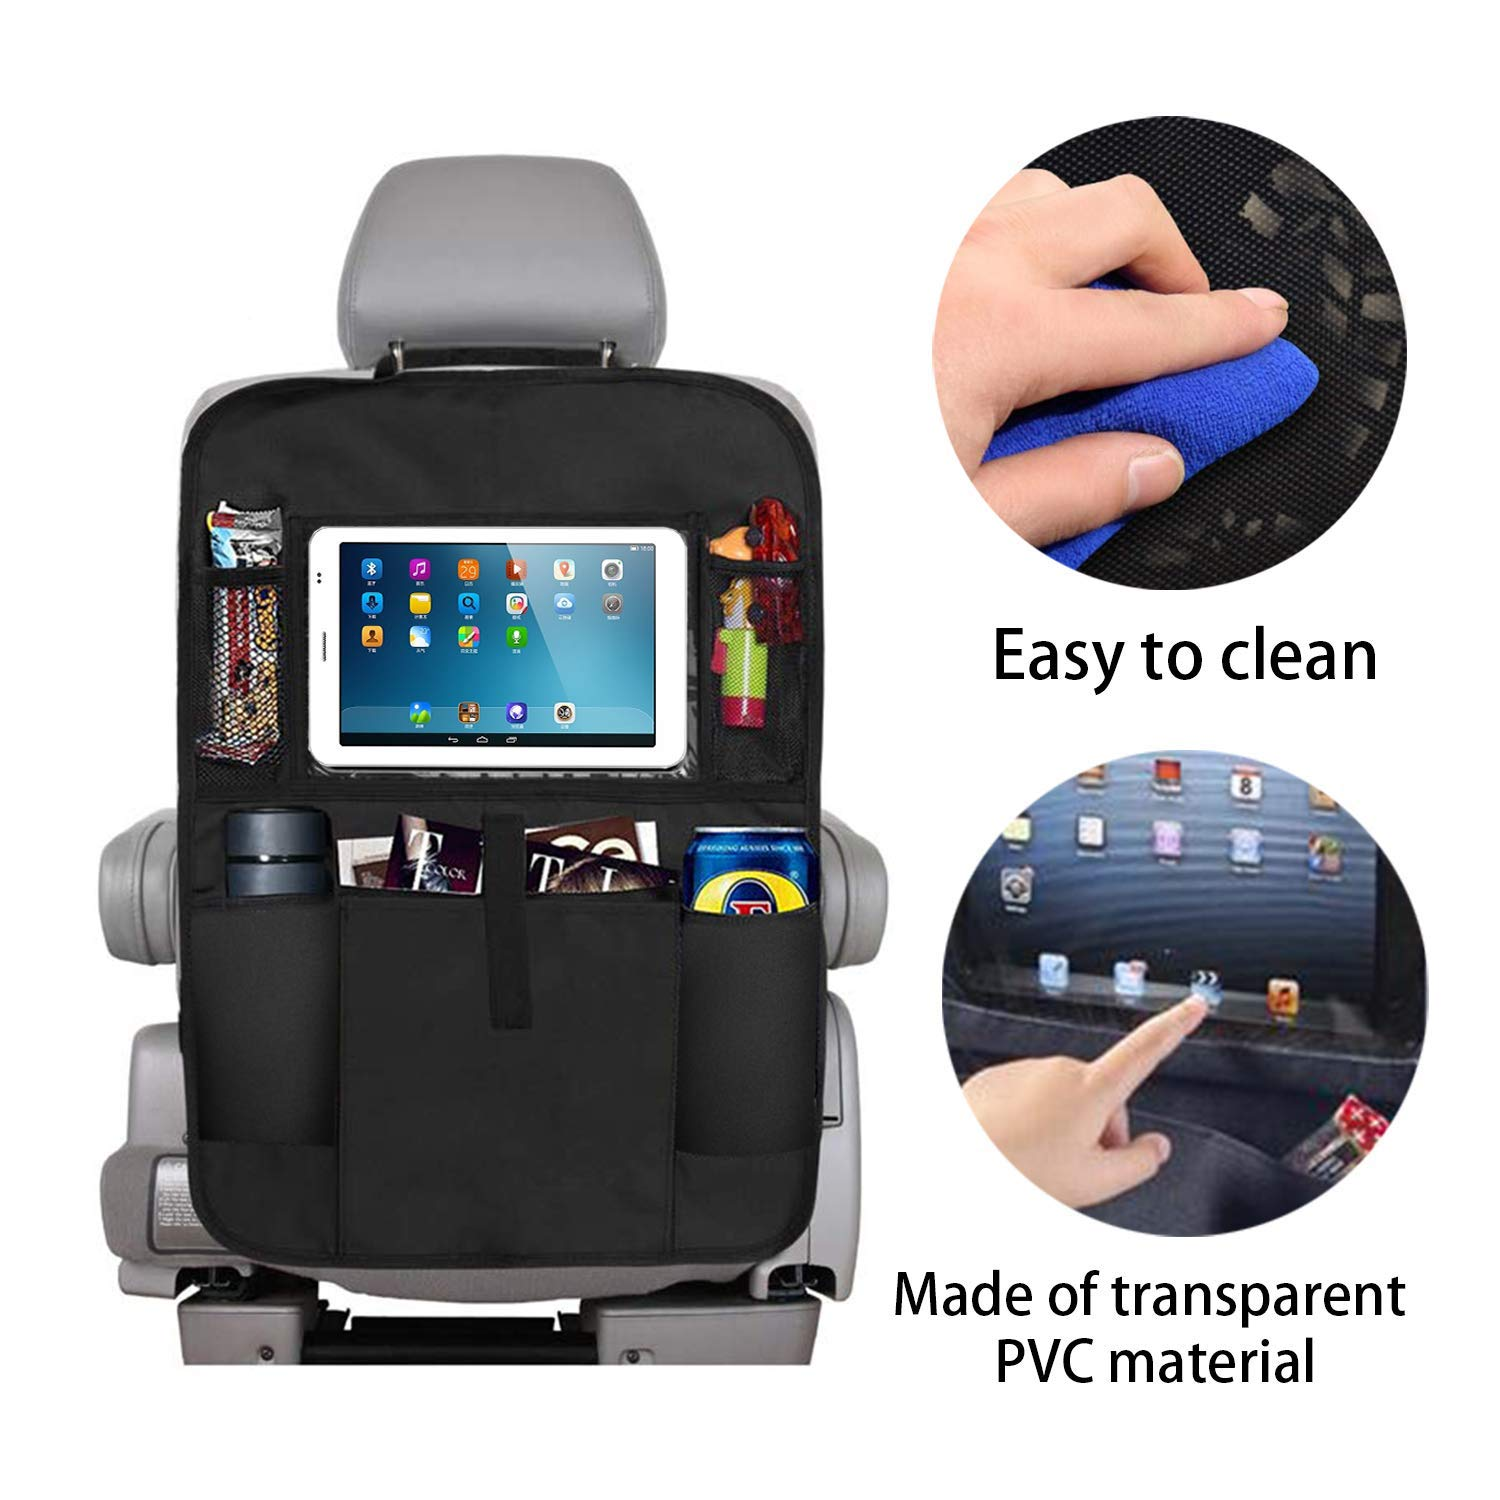 XBRN Car Organizer Back Seat,Car Back Seat Protector,Waterproof Kick Mat,Clear Touch Screen Tablet Holder for Kid//Travel with Multi Pocket,Car Seat Organizer,Car Storage Organizer with 2 Pack Black